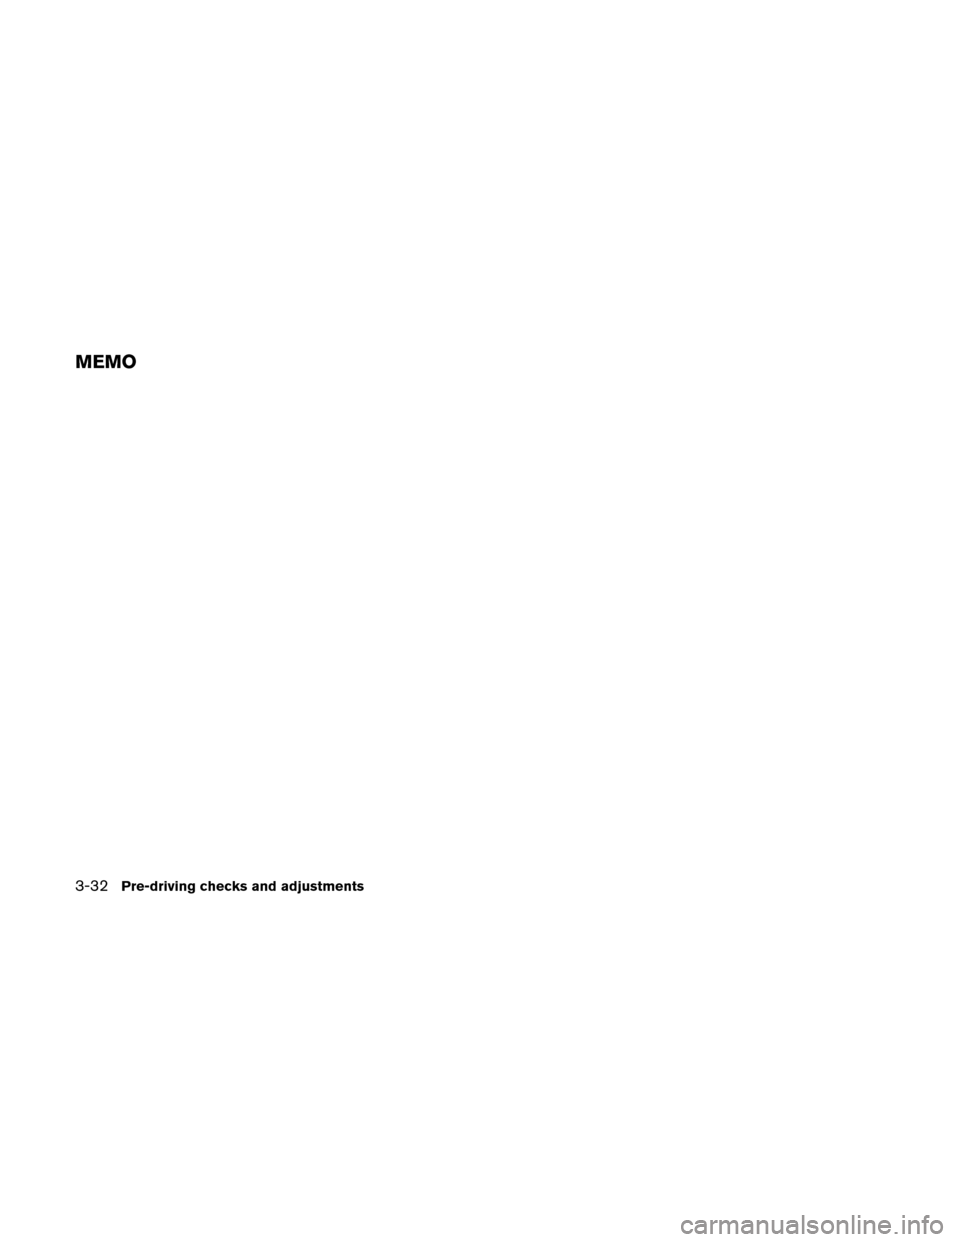 NISSAN VERSA HATCHBACK 2010 1.G Owners Manual MEMO 3-32Pre-driving checks and adjustments